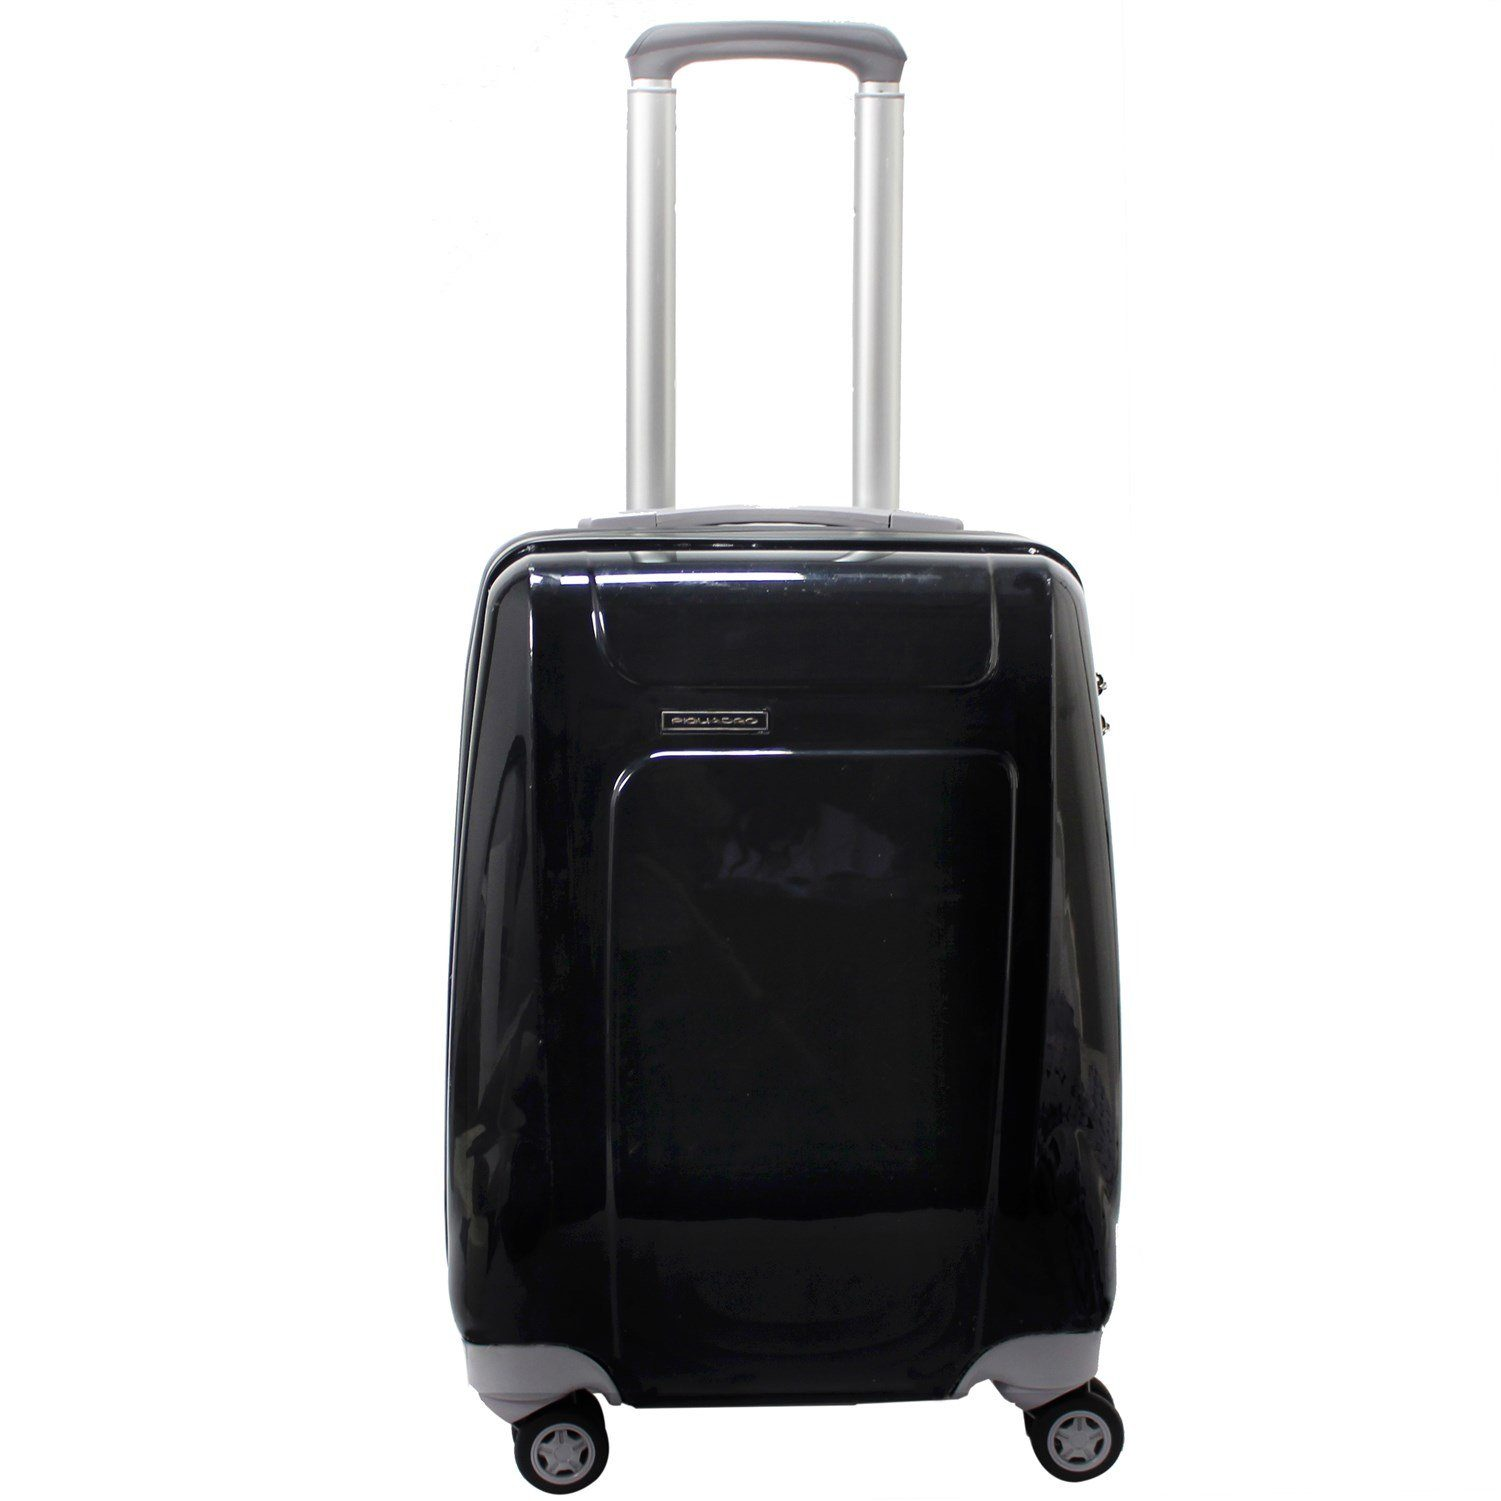 Piquadro Four-Wheels 4-Rollen Kabinentrolley 52 cm